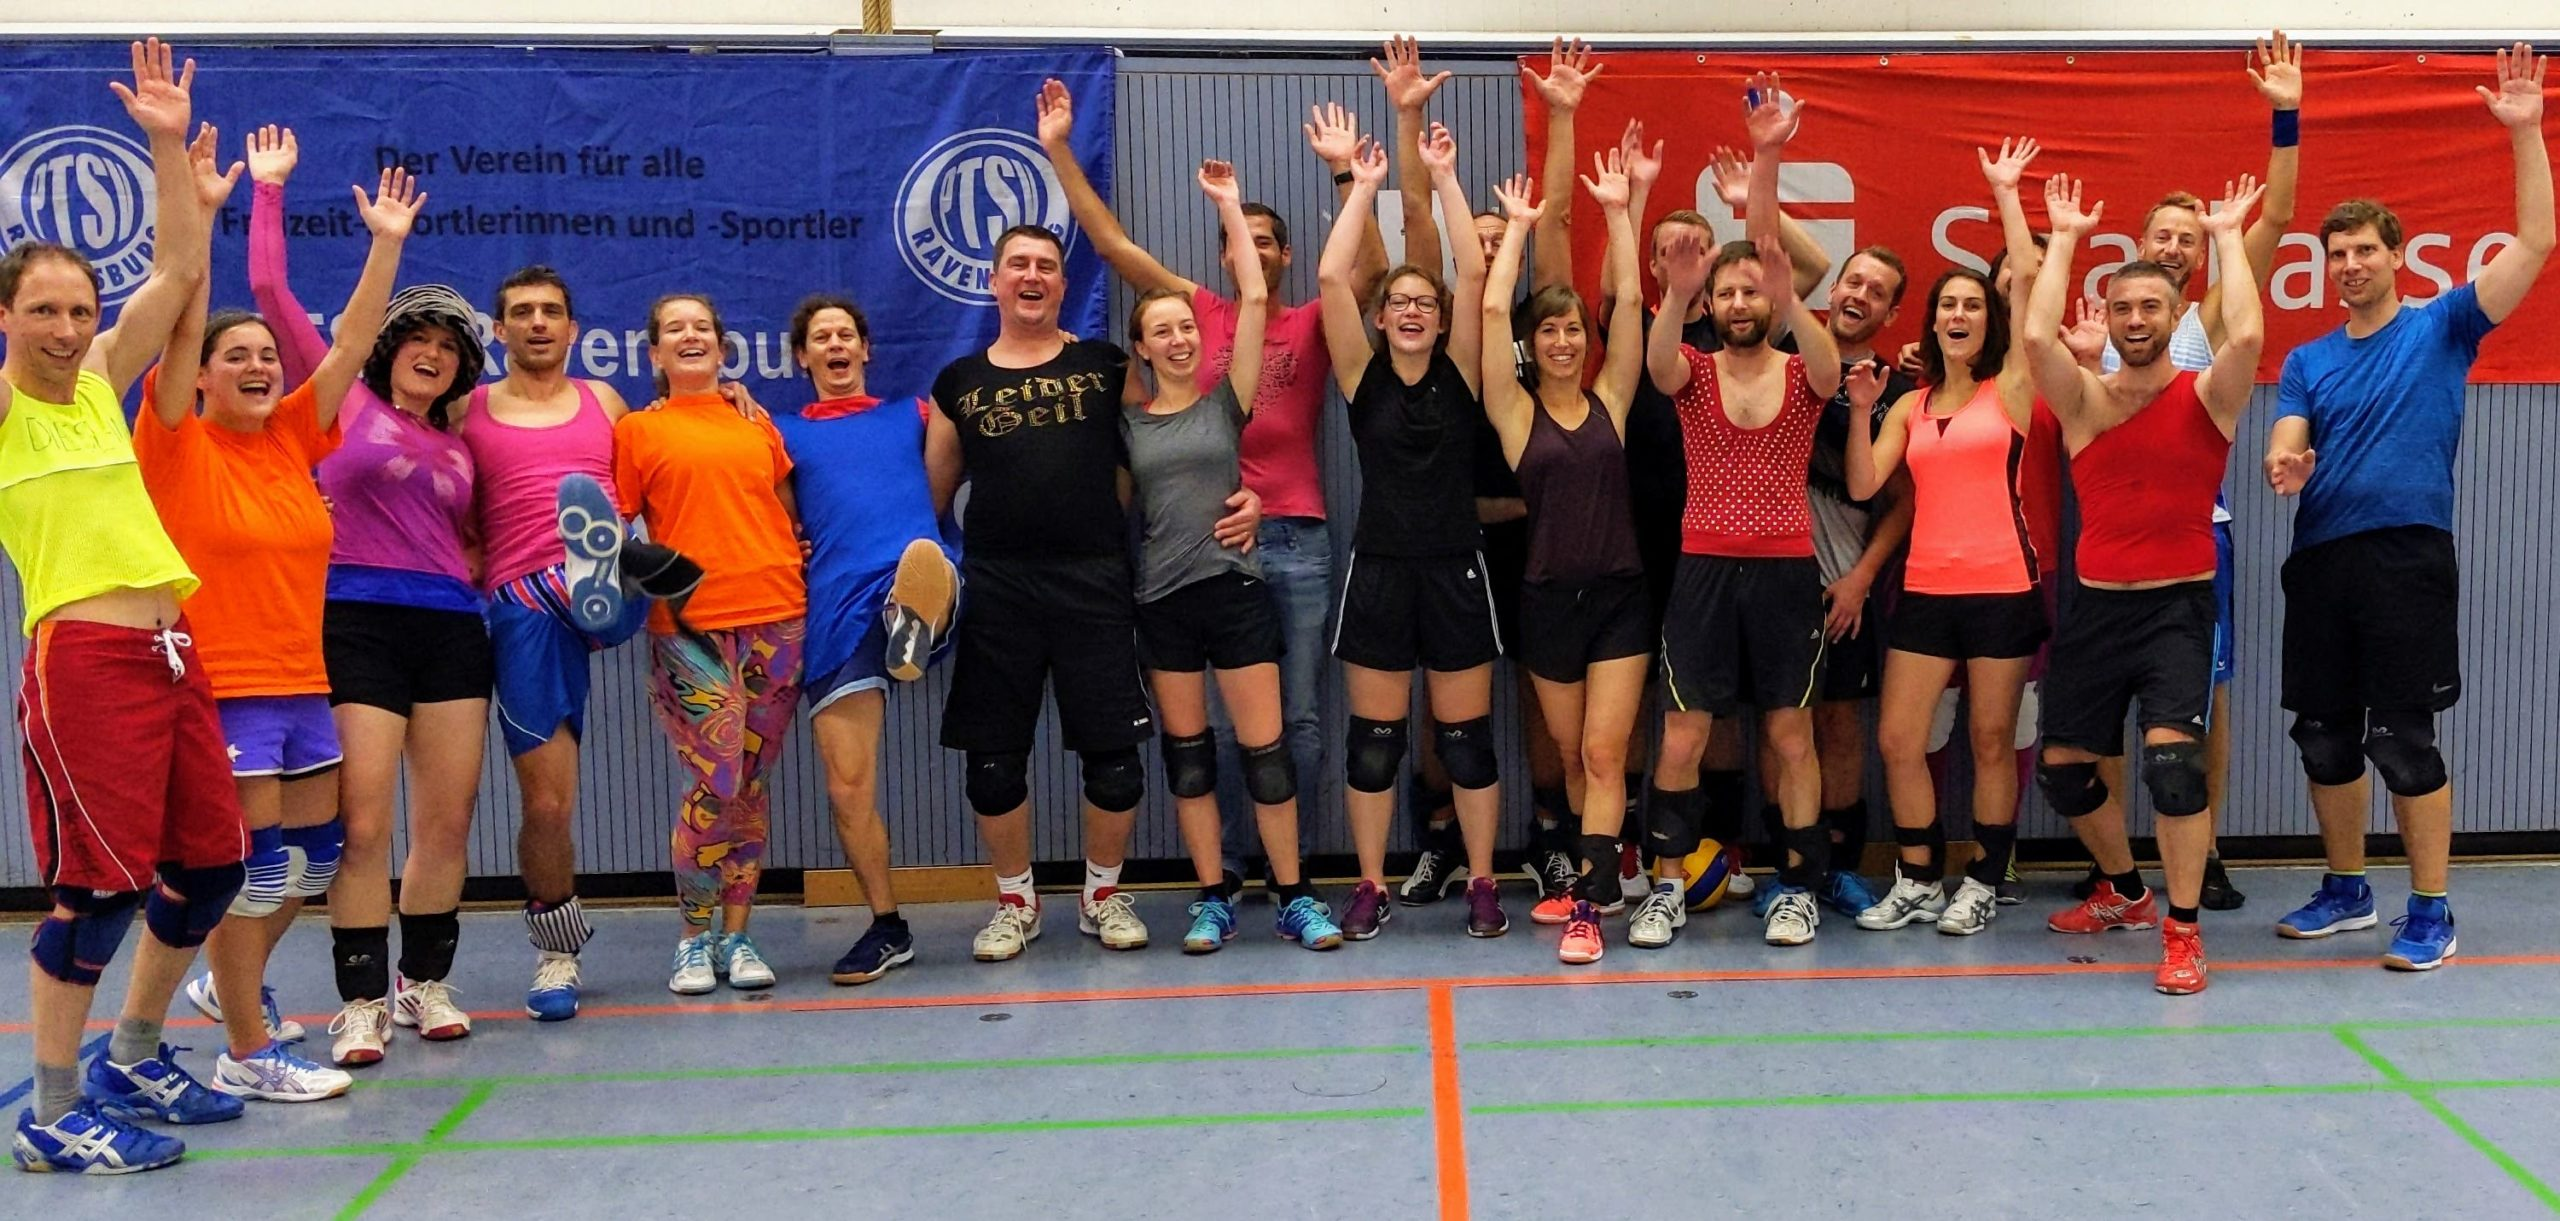 Volleyball Stadtmeisterschaft 2019